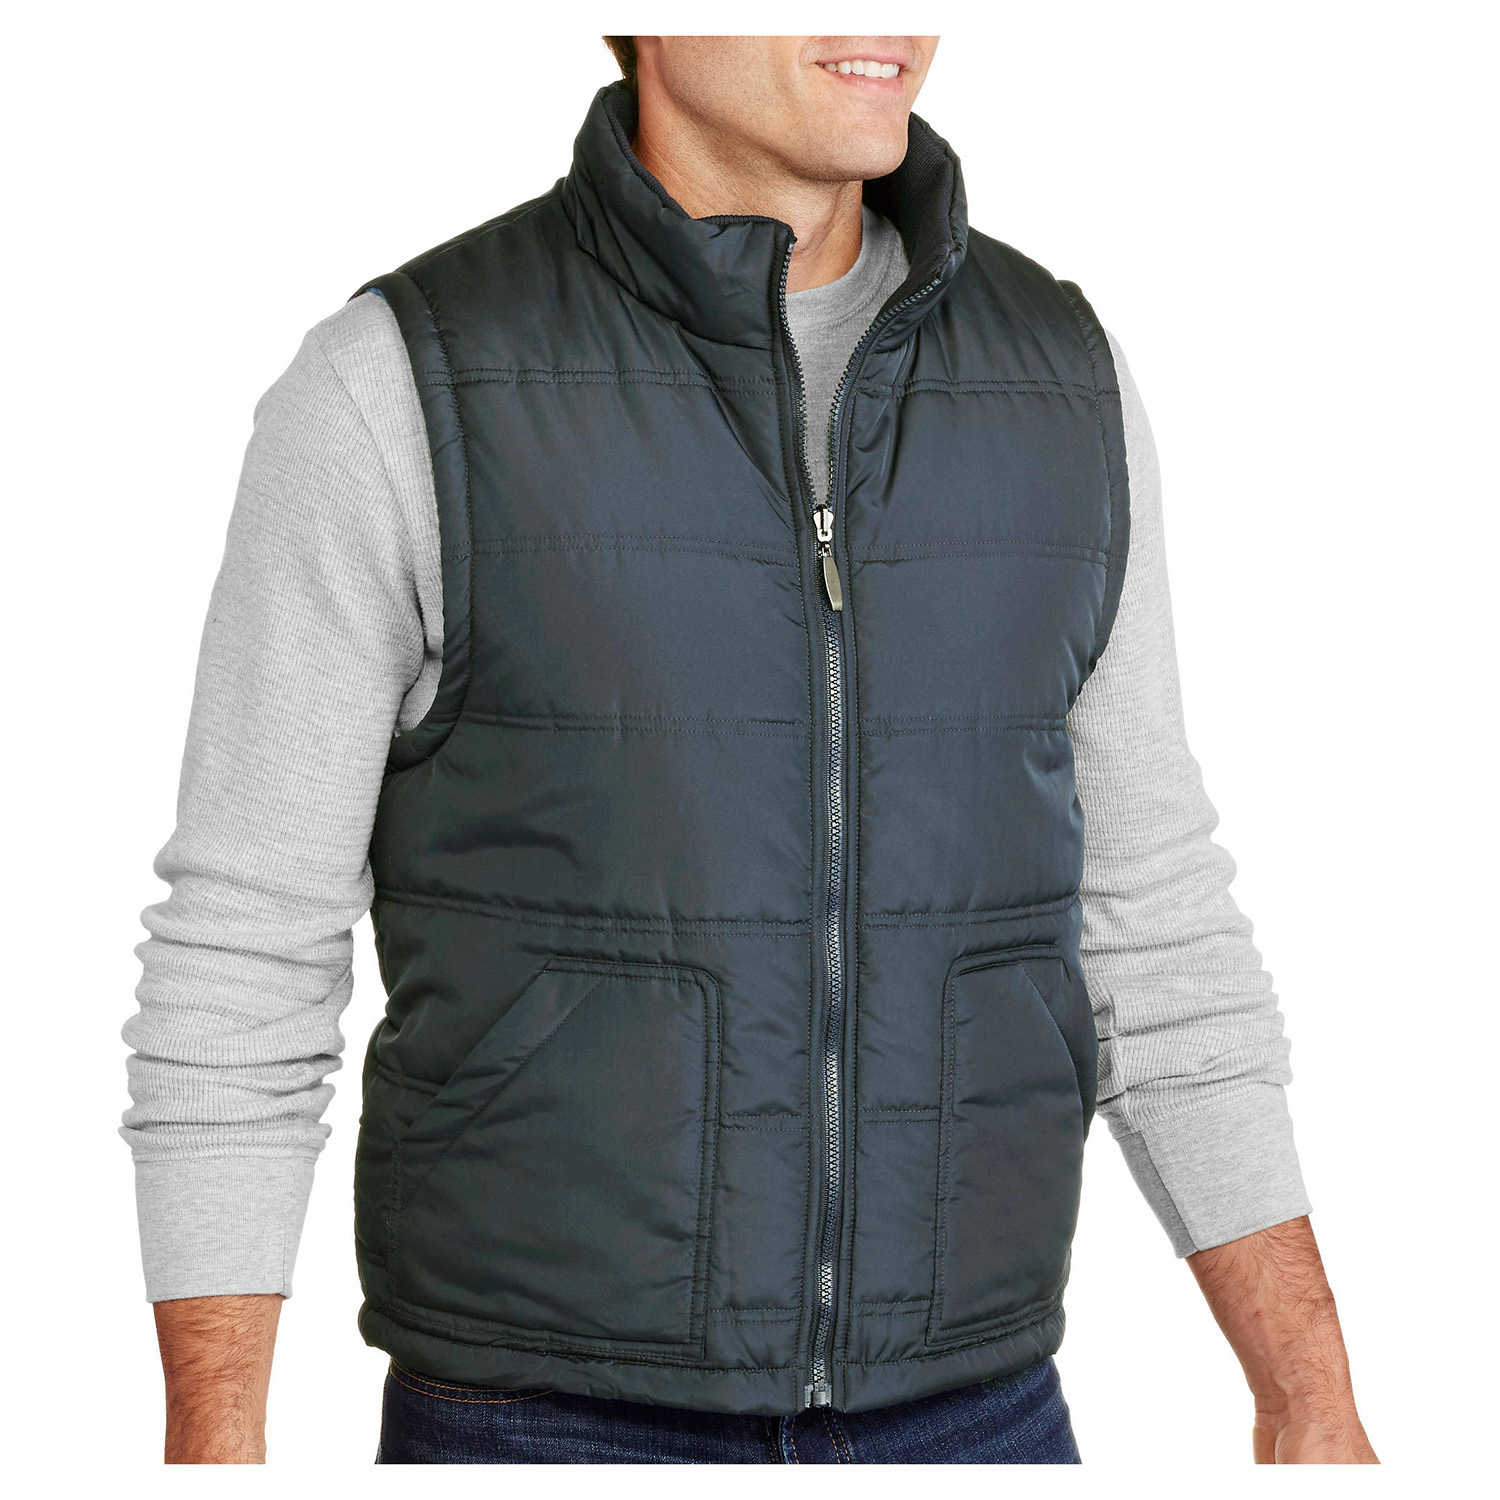 men's jackets & vests Attack the elements and your workouts head on with men's windbreakers, jackets and vests. Engineered to keep you active and comfortable in many weather conditions, men's windbreakers and jackets come in a variety of weights, fabrics and colors to meet your needs.